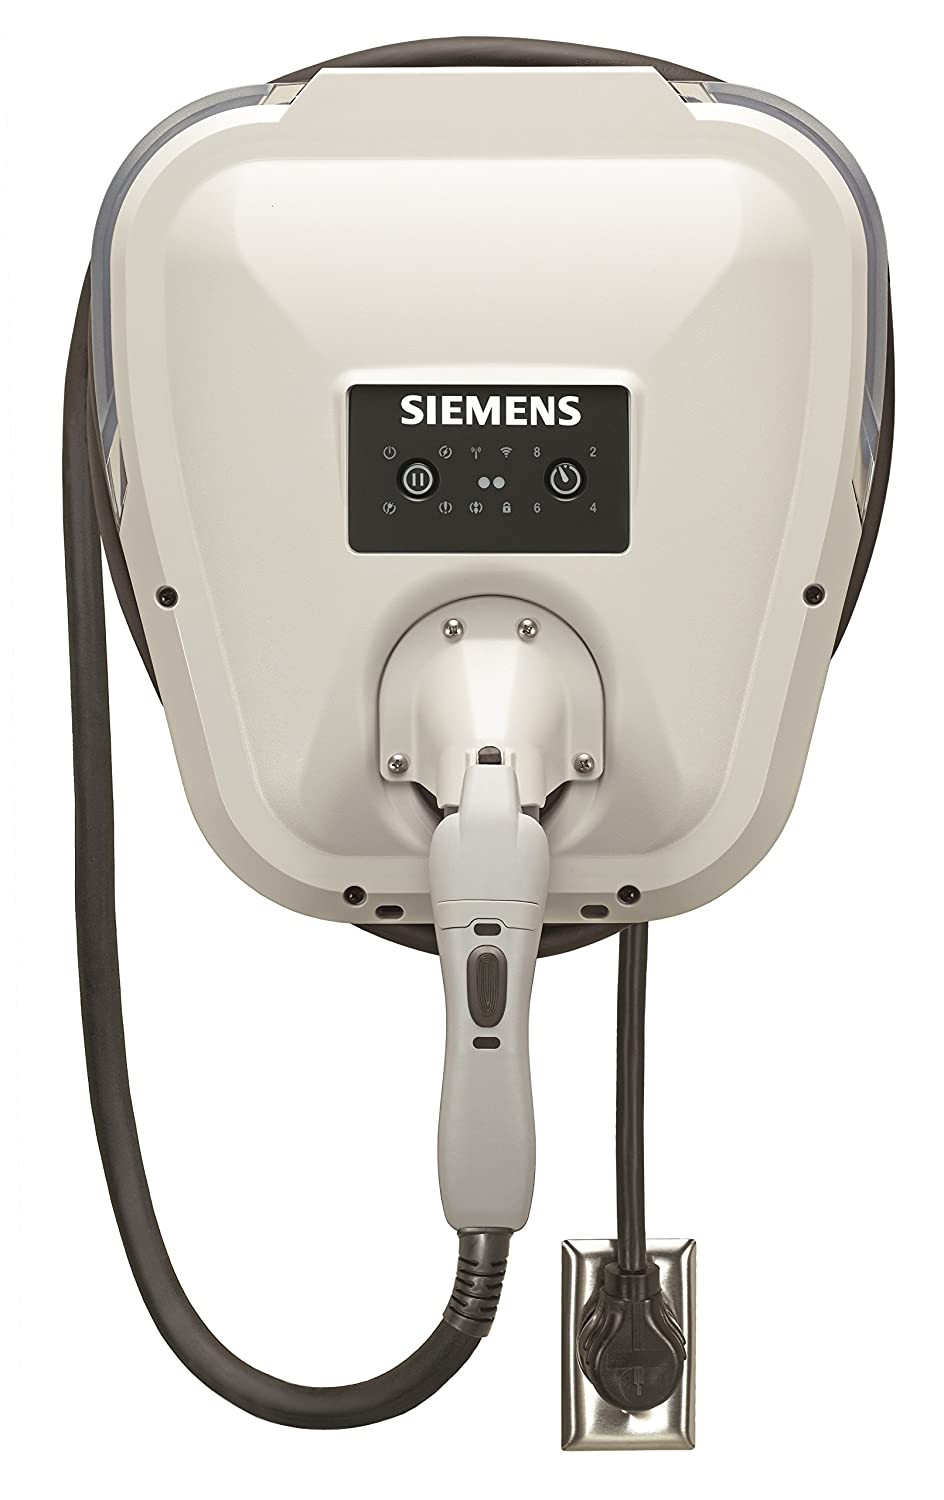 Buy Siemens VC30GRYU Versicharge 30-Amp Electric Vehicle Charger with Flexible Indoor/Outdoor and 20-Feet Cord